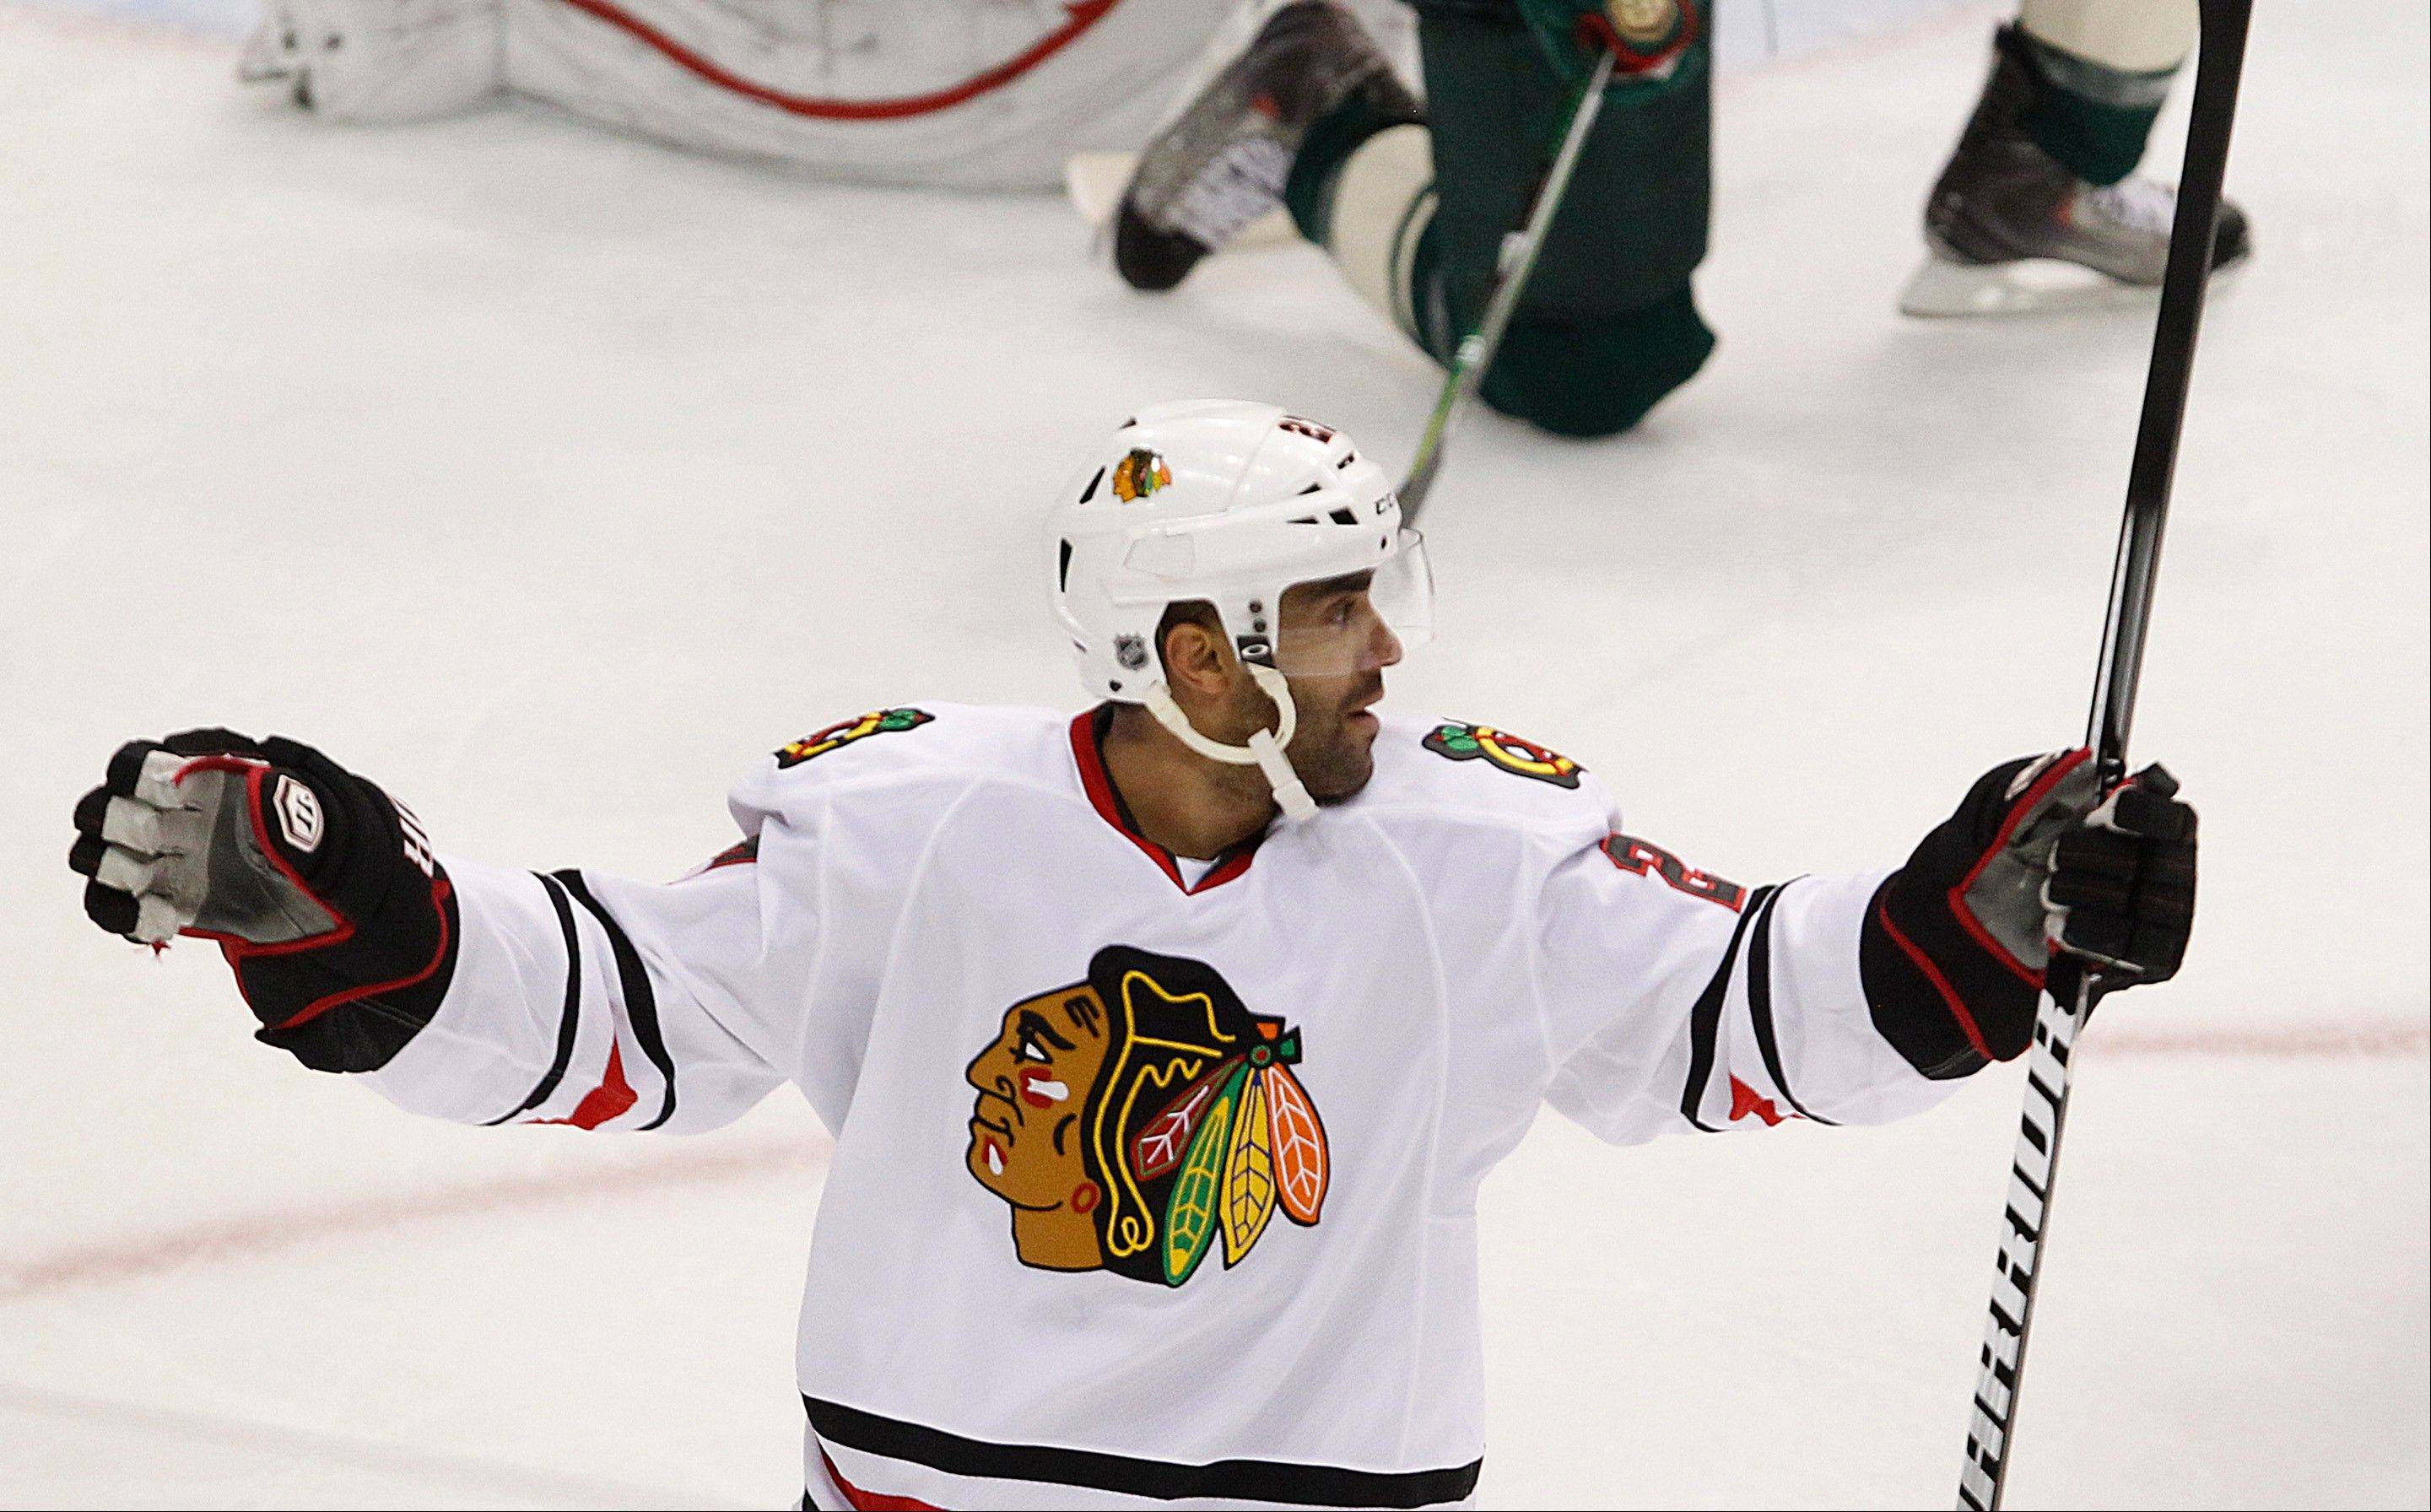 Chicago Blackhawks' Johnny Oduya celebrates his goal against Minnesota Wild goalie Josh Harding in the first period.